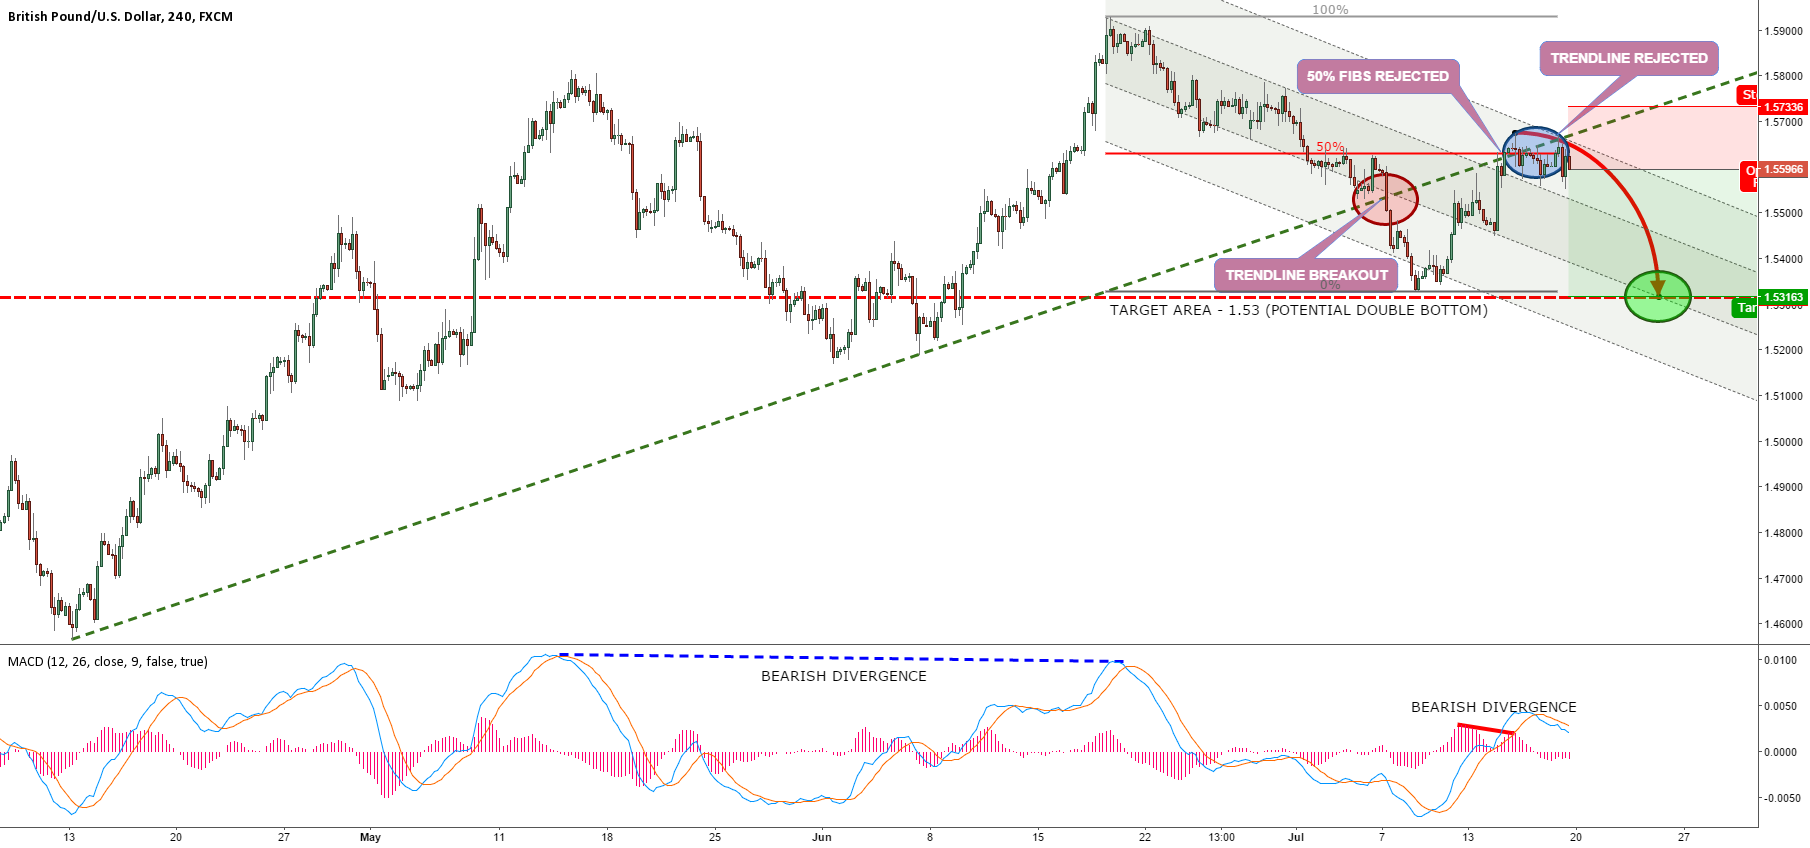 GBPUSD TO FORM A DOUBLE BOTTOM